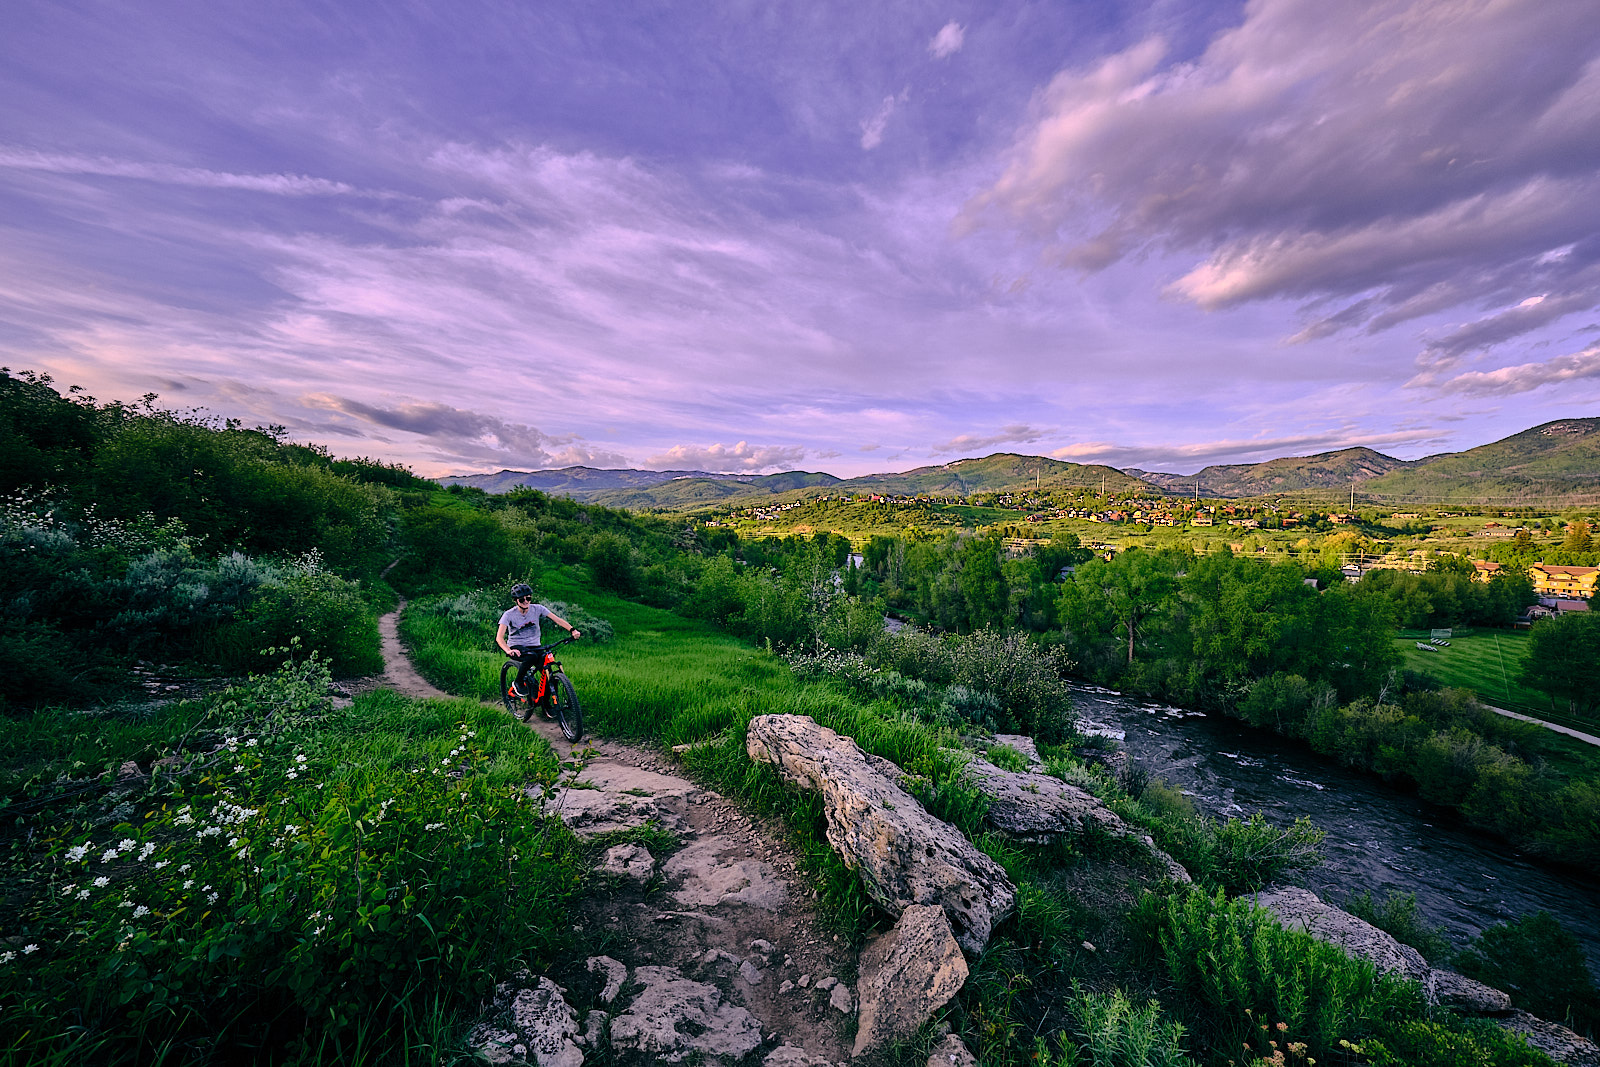 Ninerbikes_Jet9_steamboatsprings.jpg